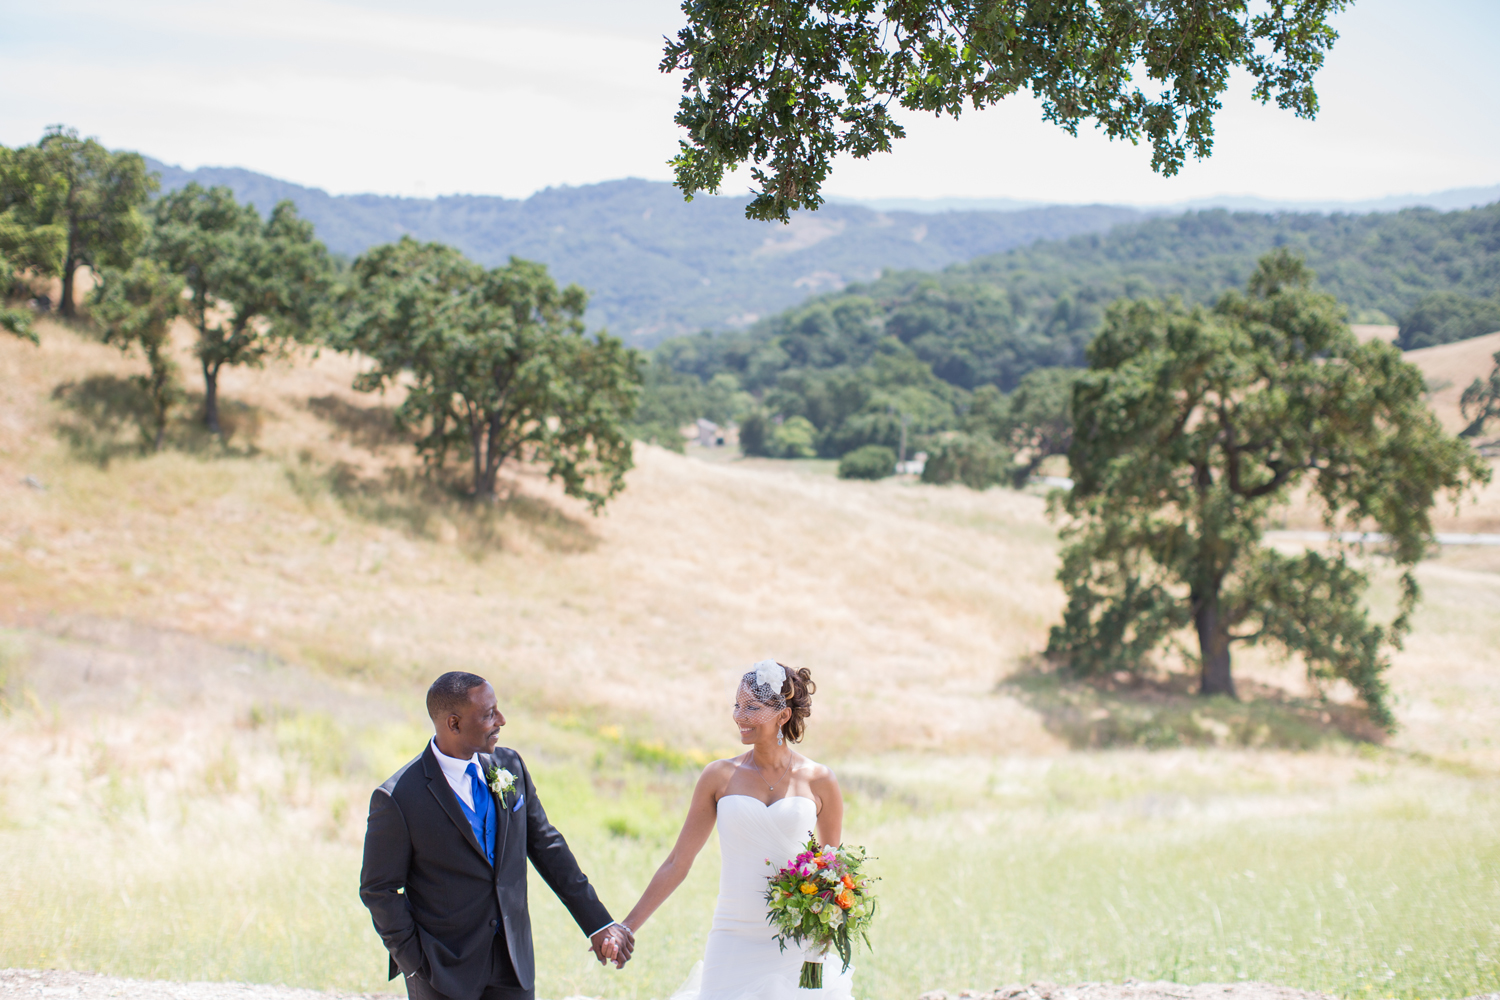 willow-heights-mansion-wedding-photography022.jpg